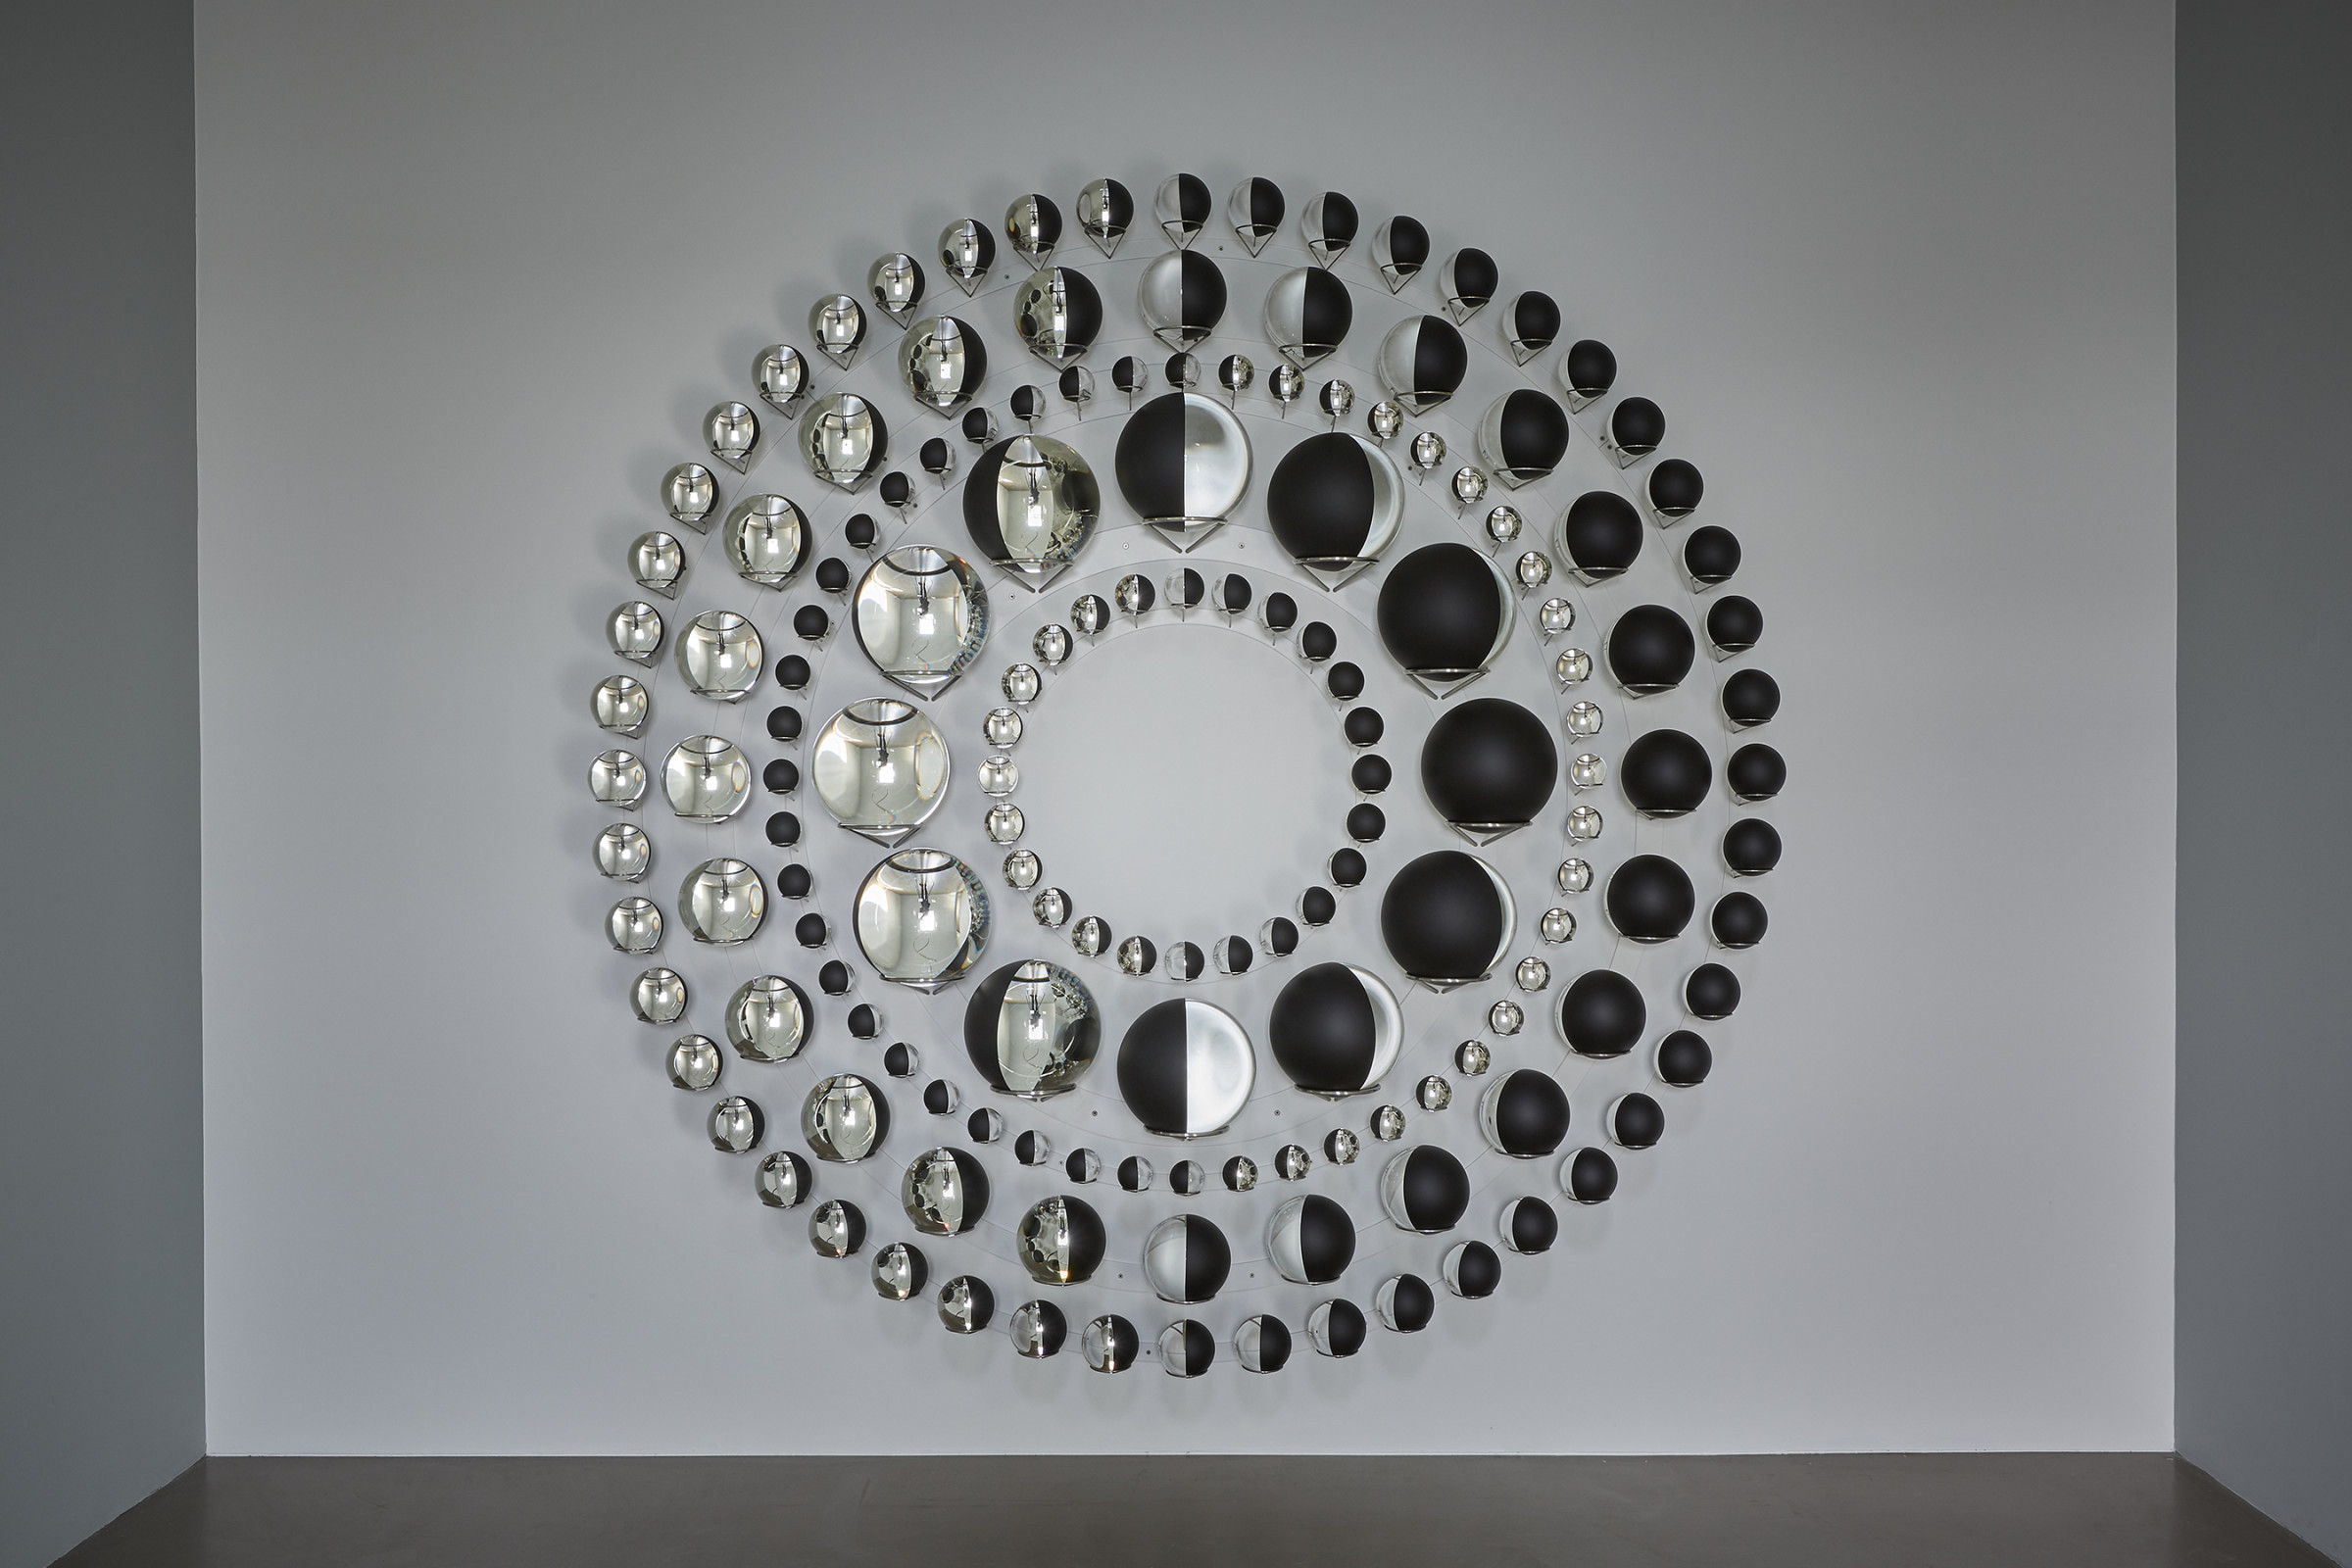 <span class=&#34;link fancybox-details-link&#34;><a href=&#34;/artists/28-olafur-eliasson/works/13127/&#34;>View Detail Page</a></span><div class=&#34;artist&#34;><strong>ÓLAFUR ELÍASSON</strong></div> <div class=&#34;title&#34;><em>Universal diagram</em>, 2016</div> <div class=&#34;medium&#34;>glass spheres, sliver, paint (black, white), stainless steel</div> <div class=&#34;dimensions&#34;>265 cm diameter, all spheres half silvered: <br /> 130 mm x 48<br /> 200 mm x 24<br /> 80 mmx 48<br /> 300 mm x 12<br /> 90 mm x 24</div>